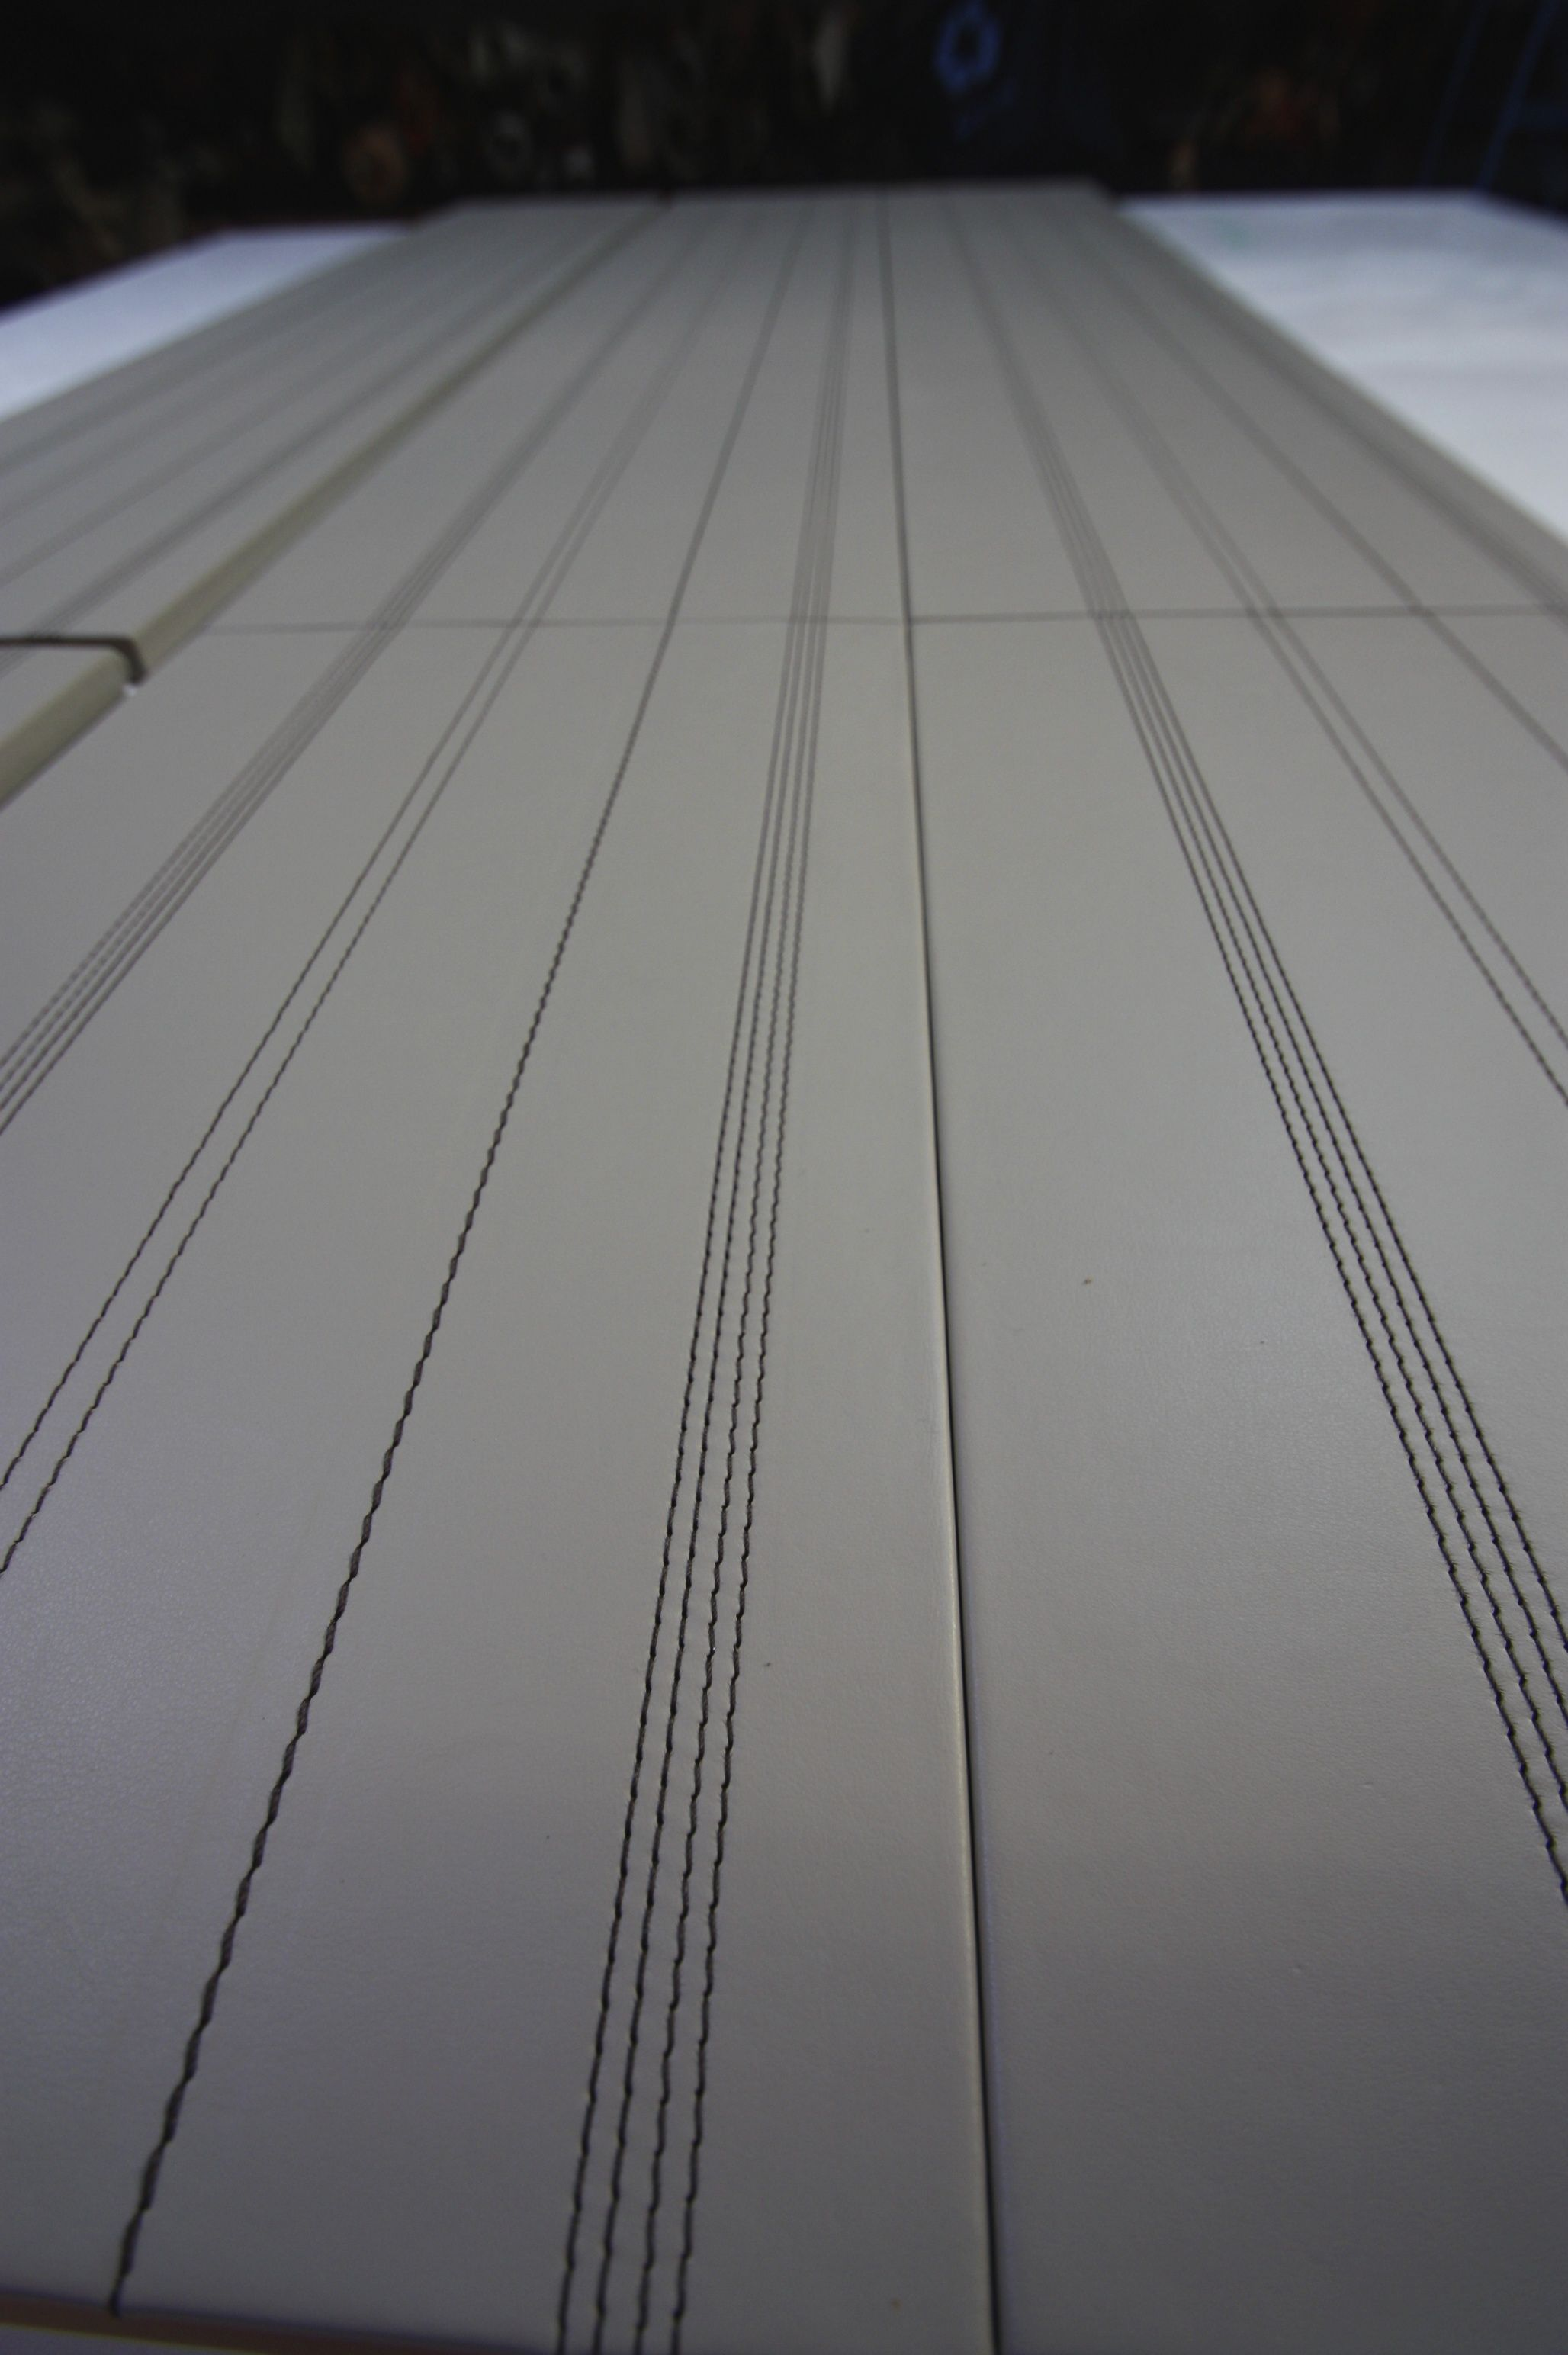 Harcourt London - Multiple Stitch line detail on leather wall panels